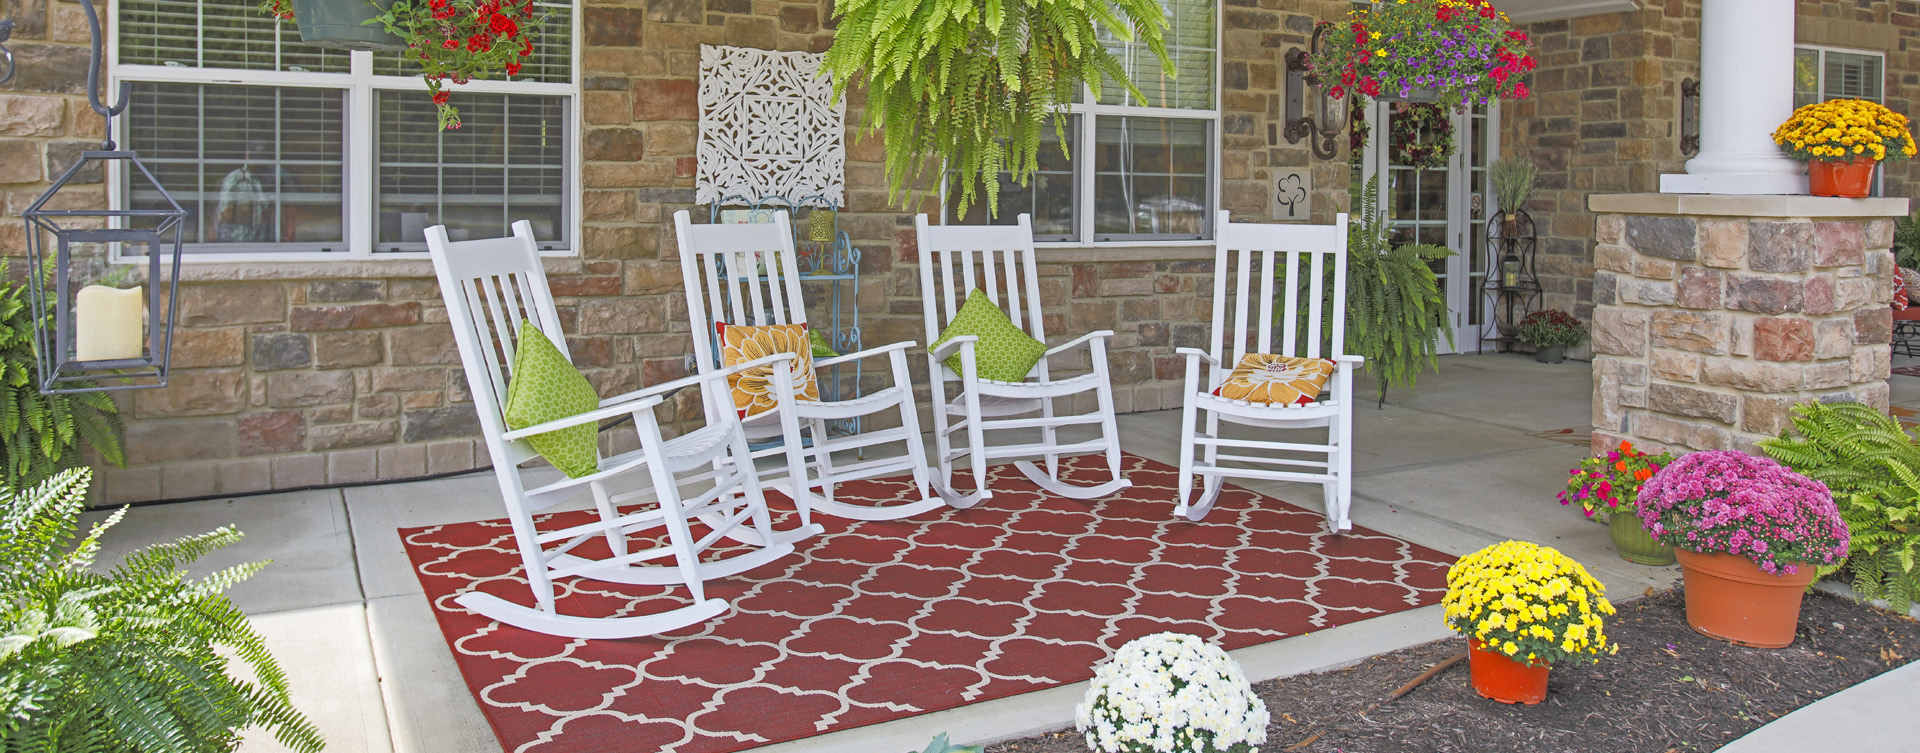 Relax in your favorite chair on the porch at Bickford of Carmel